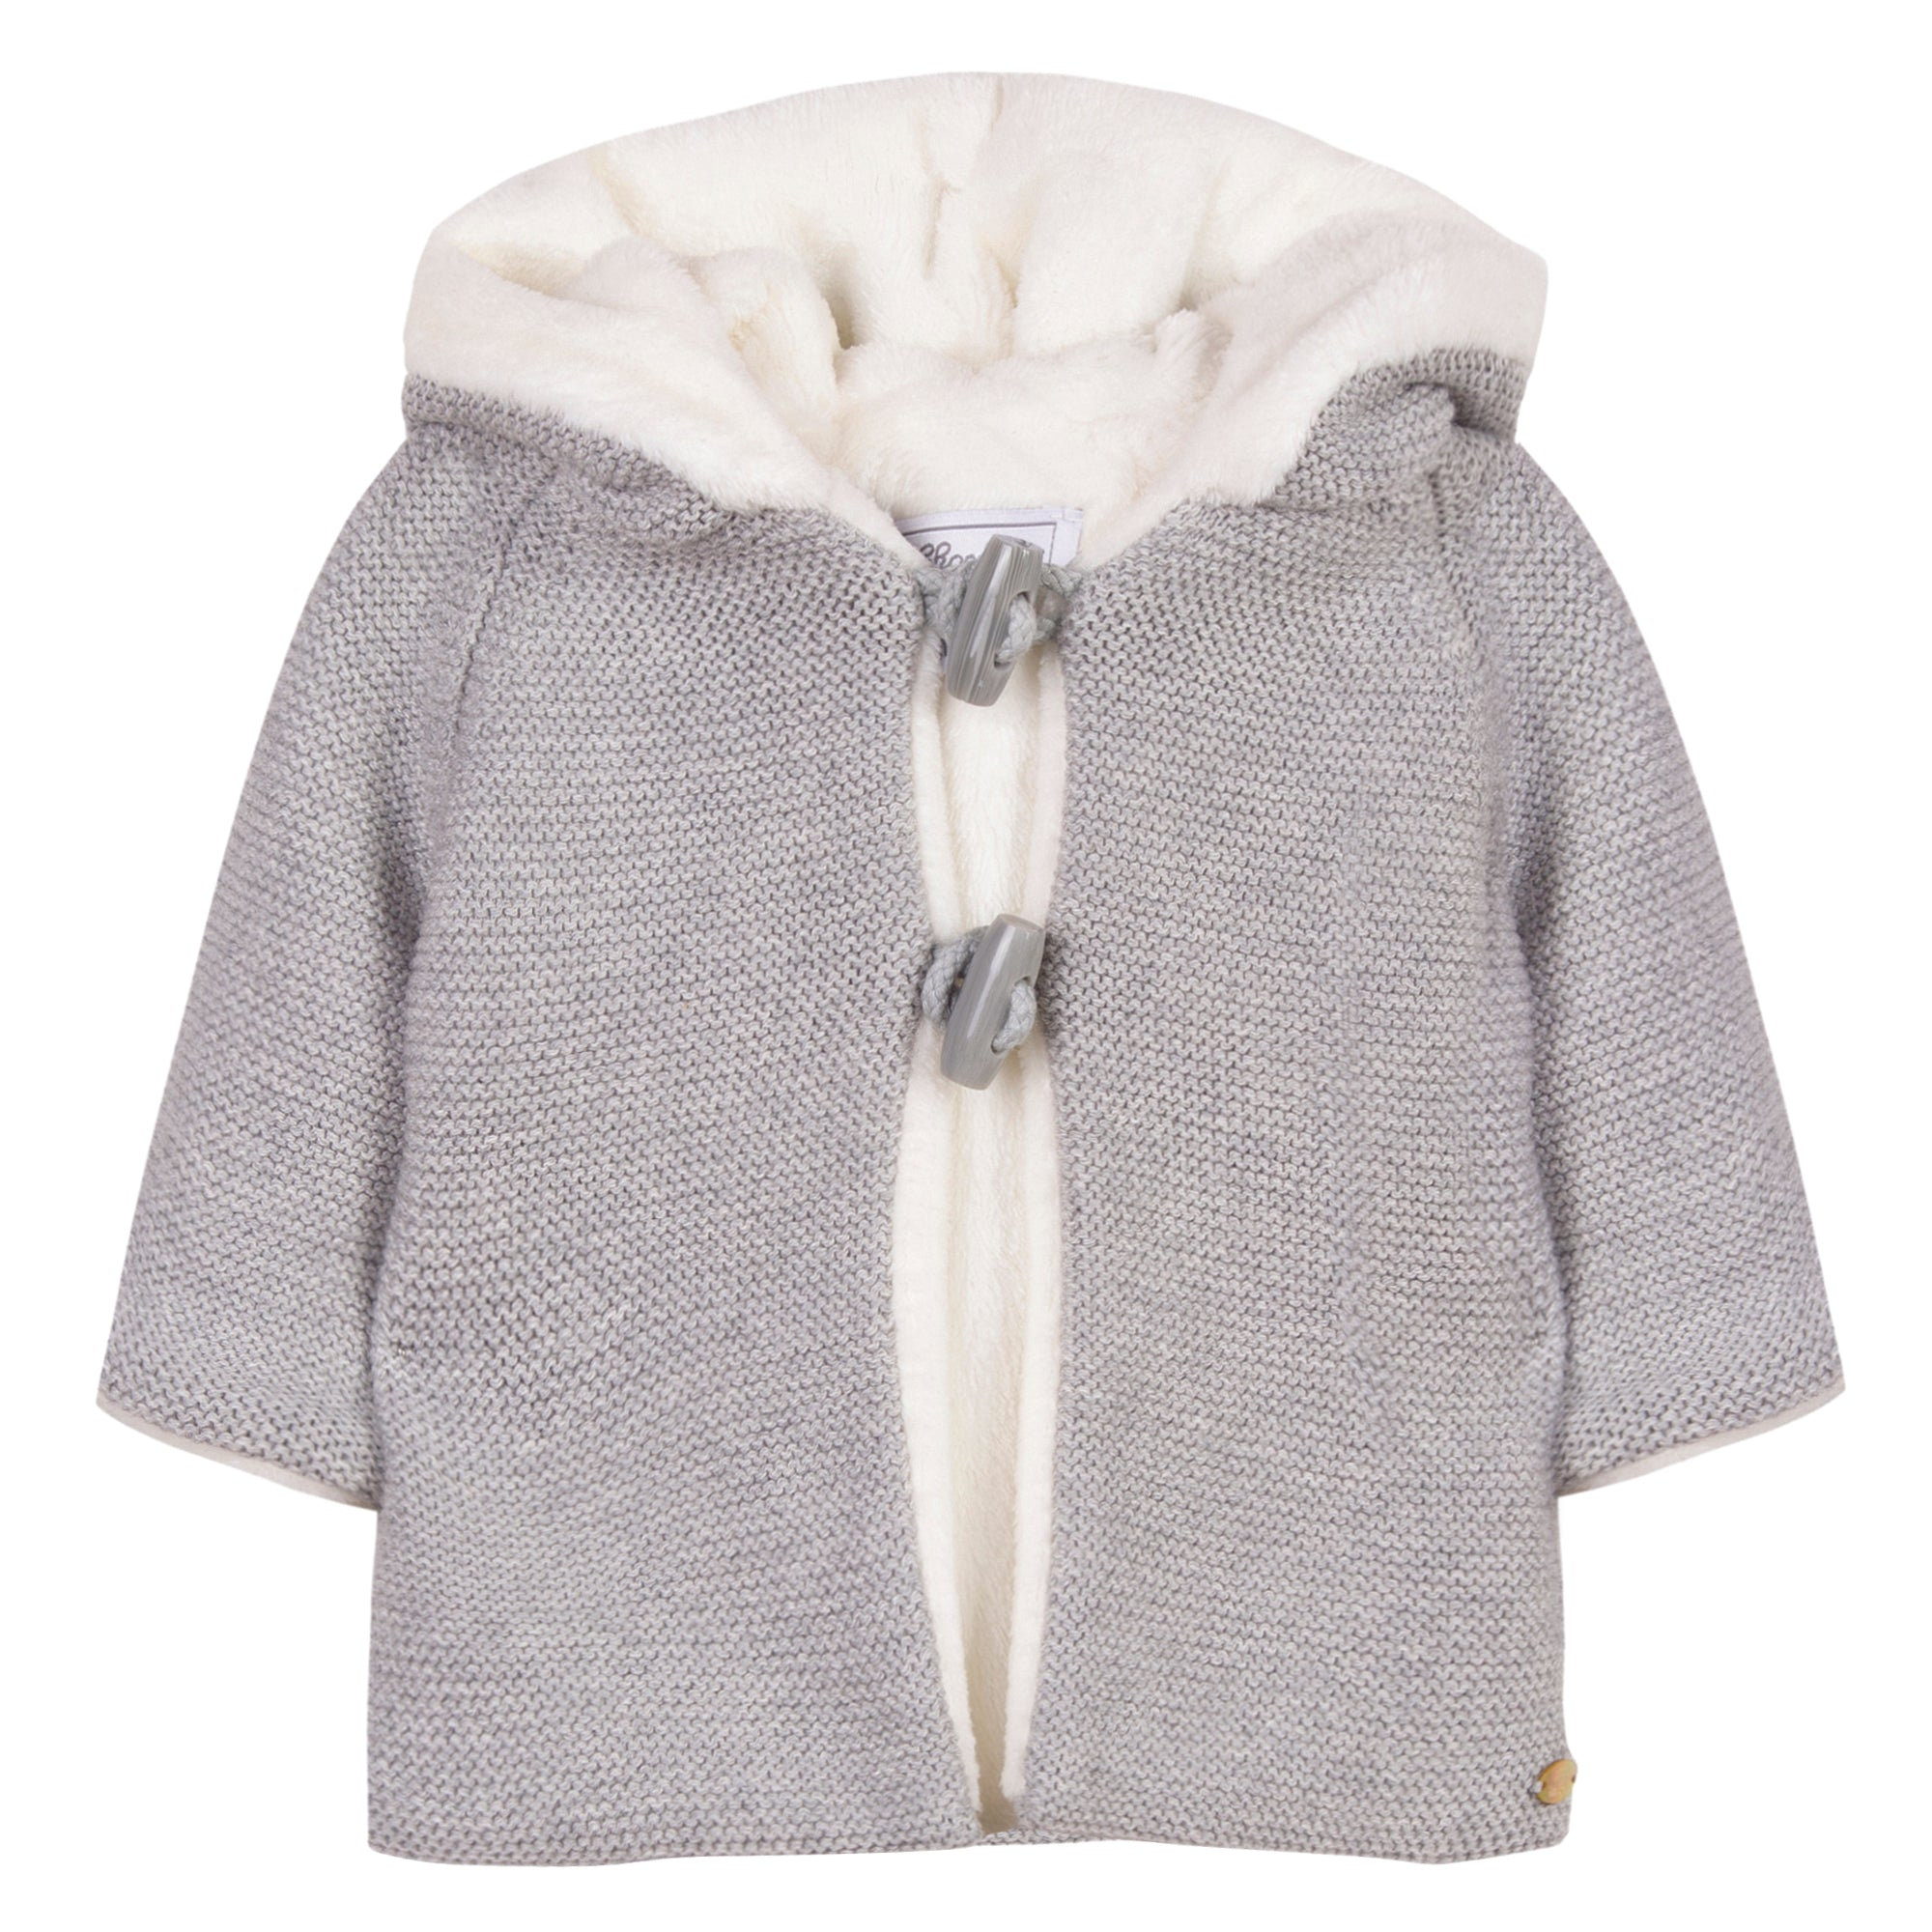 Tartine Manteau3 Baby Coat